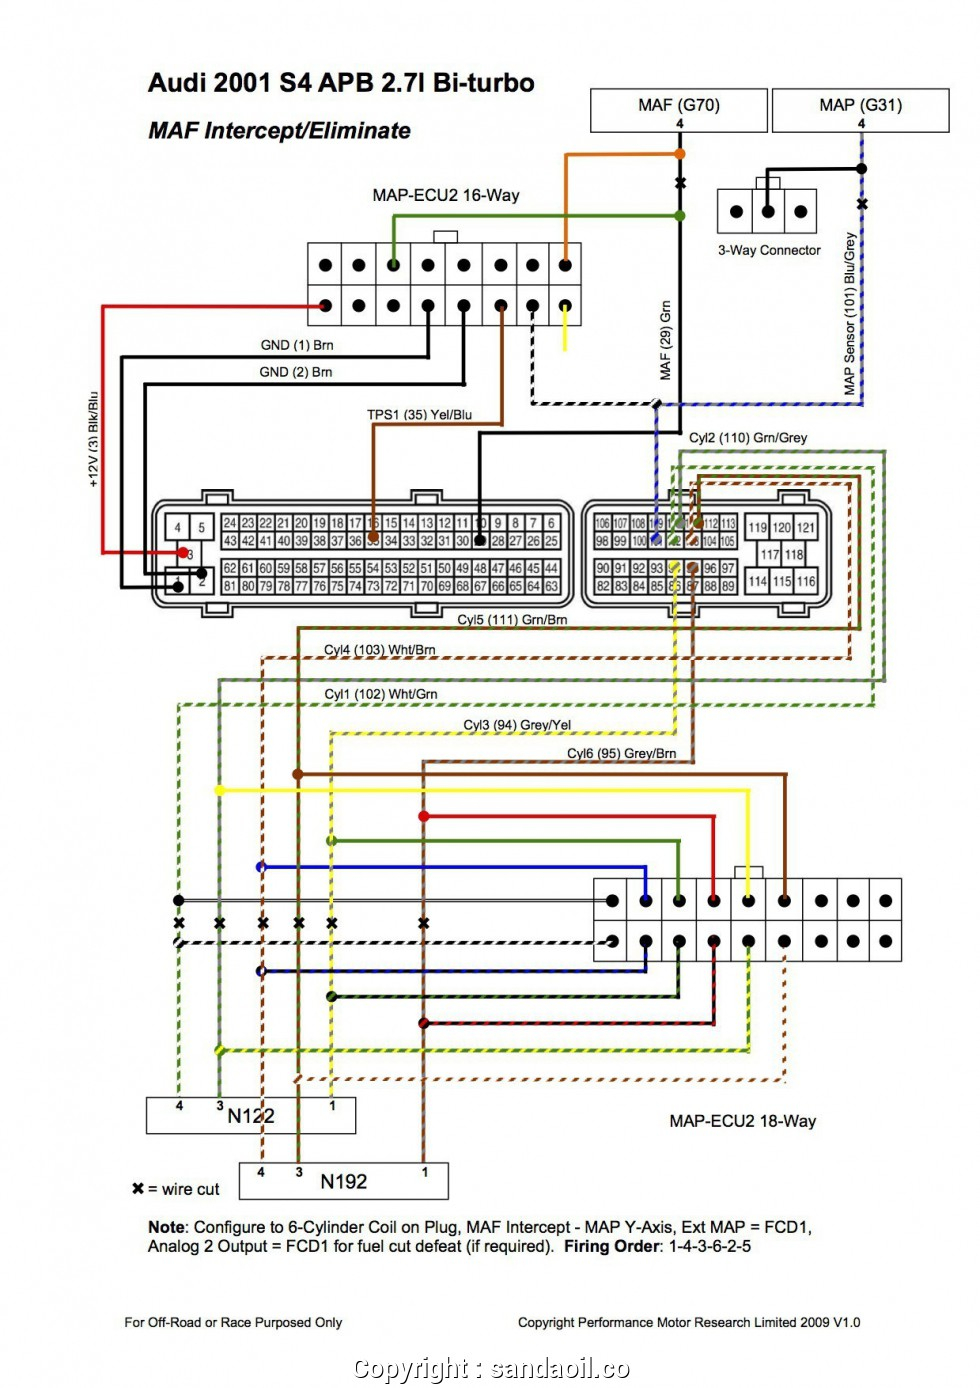 Kenwood Kdc 108 Wiring Harness | Wiring Library - Kenwood Kdc 108 Wiring Diagram